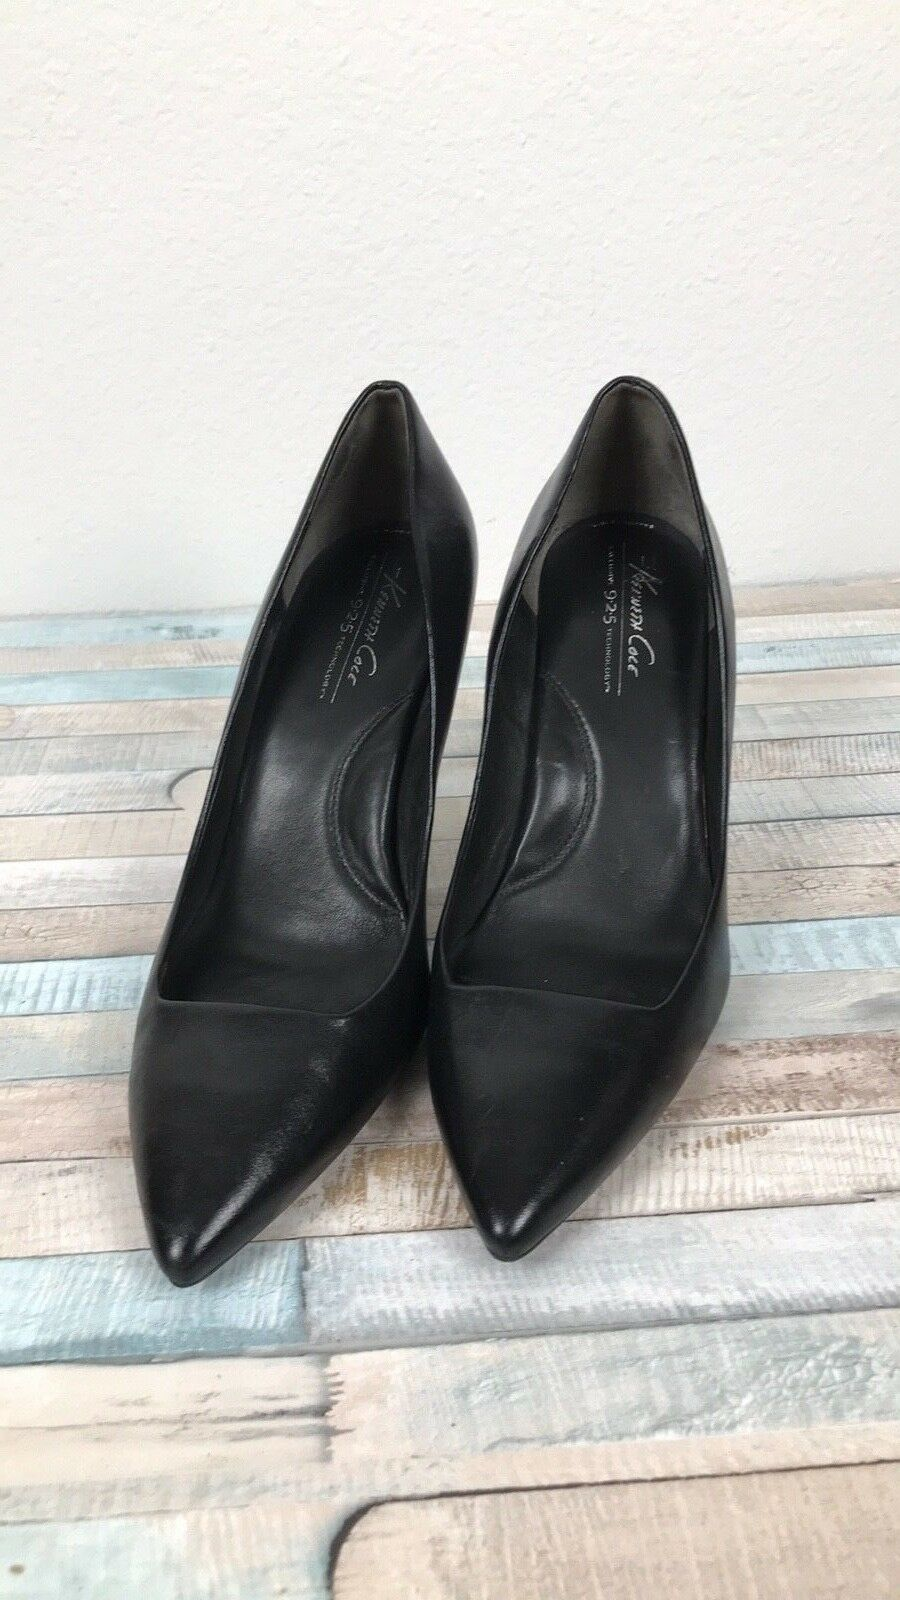 KENNETH COLE WOMENS BLACK LEATHER POINTED TOE PARKVILLE STILETTO PUMP 9 057 4